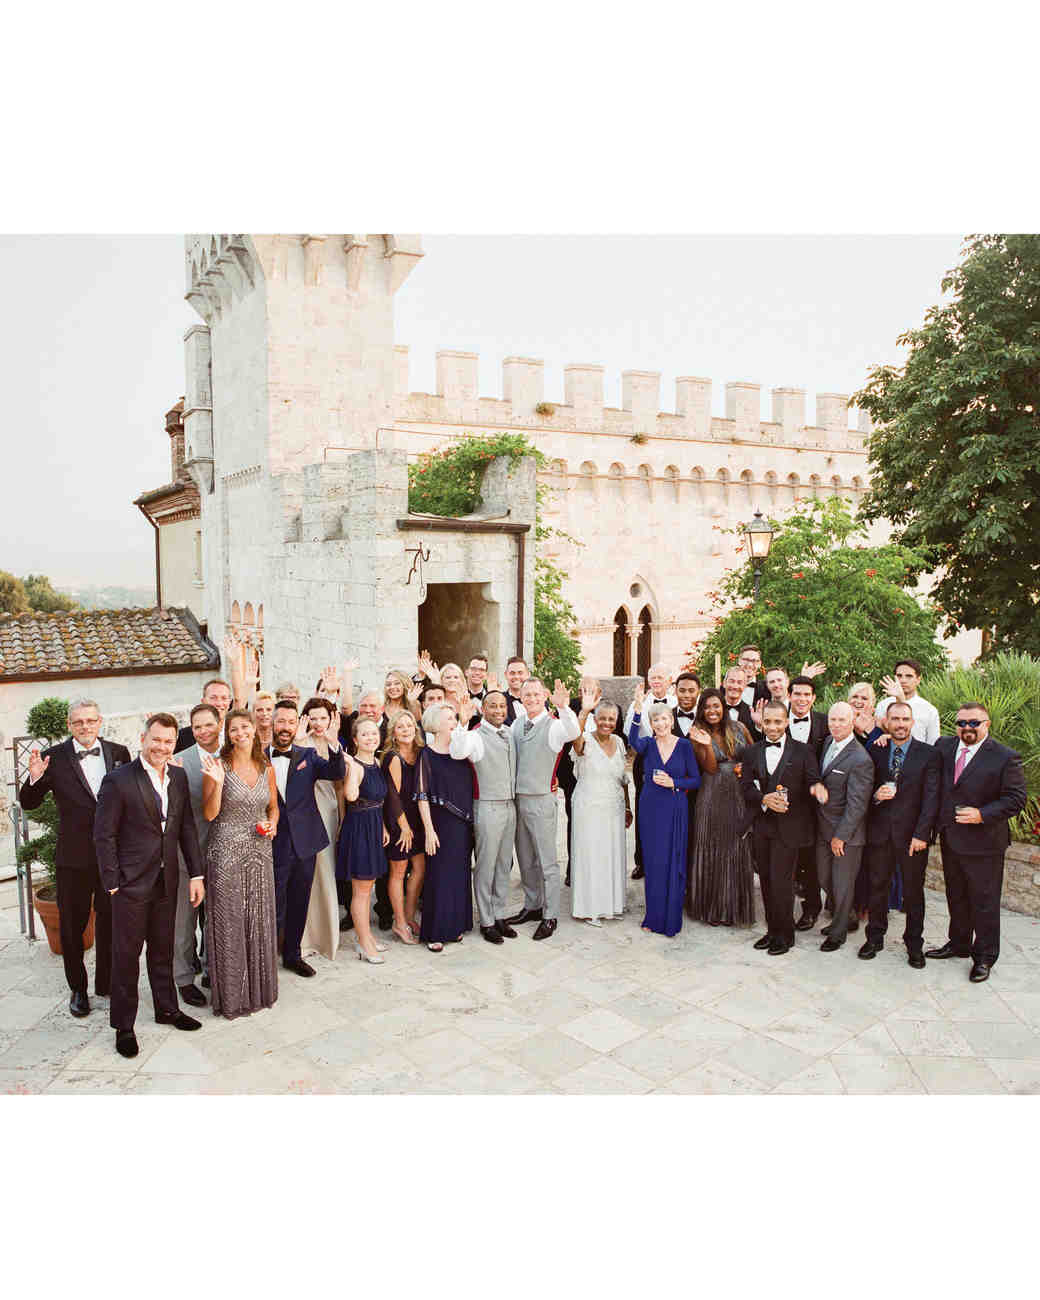 dennis-bryan-wedding-italy-guests-group-photo-venue-079-0767-s112633.jpg